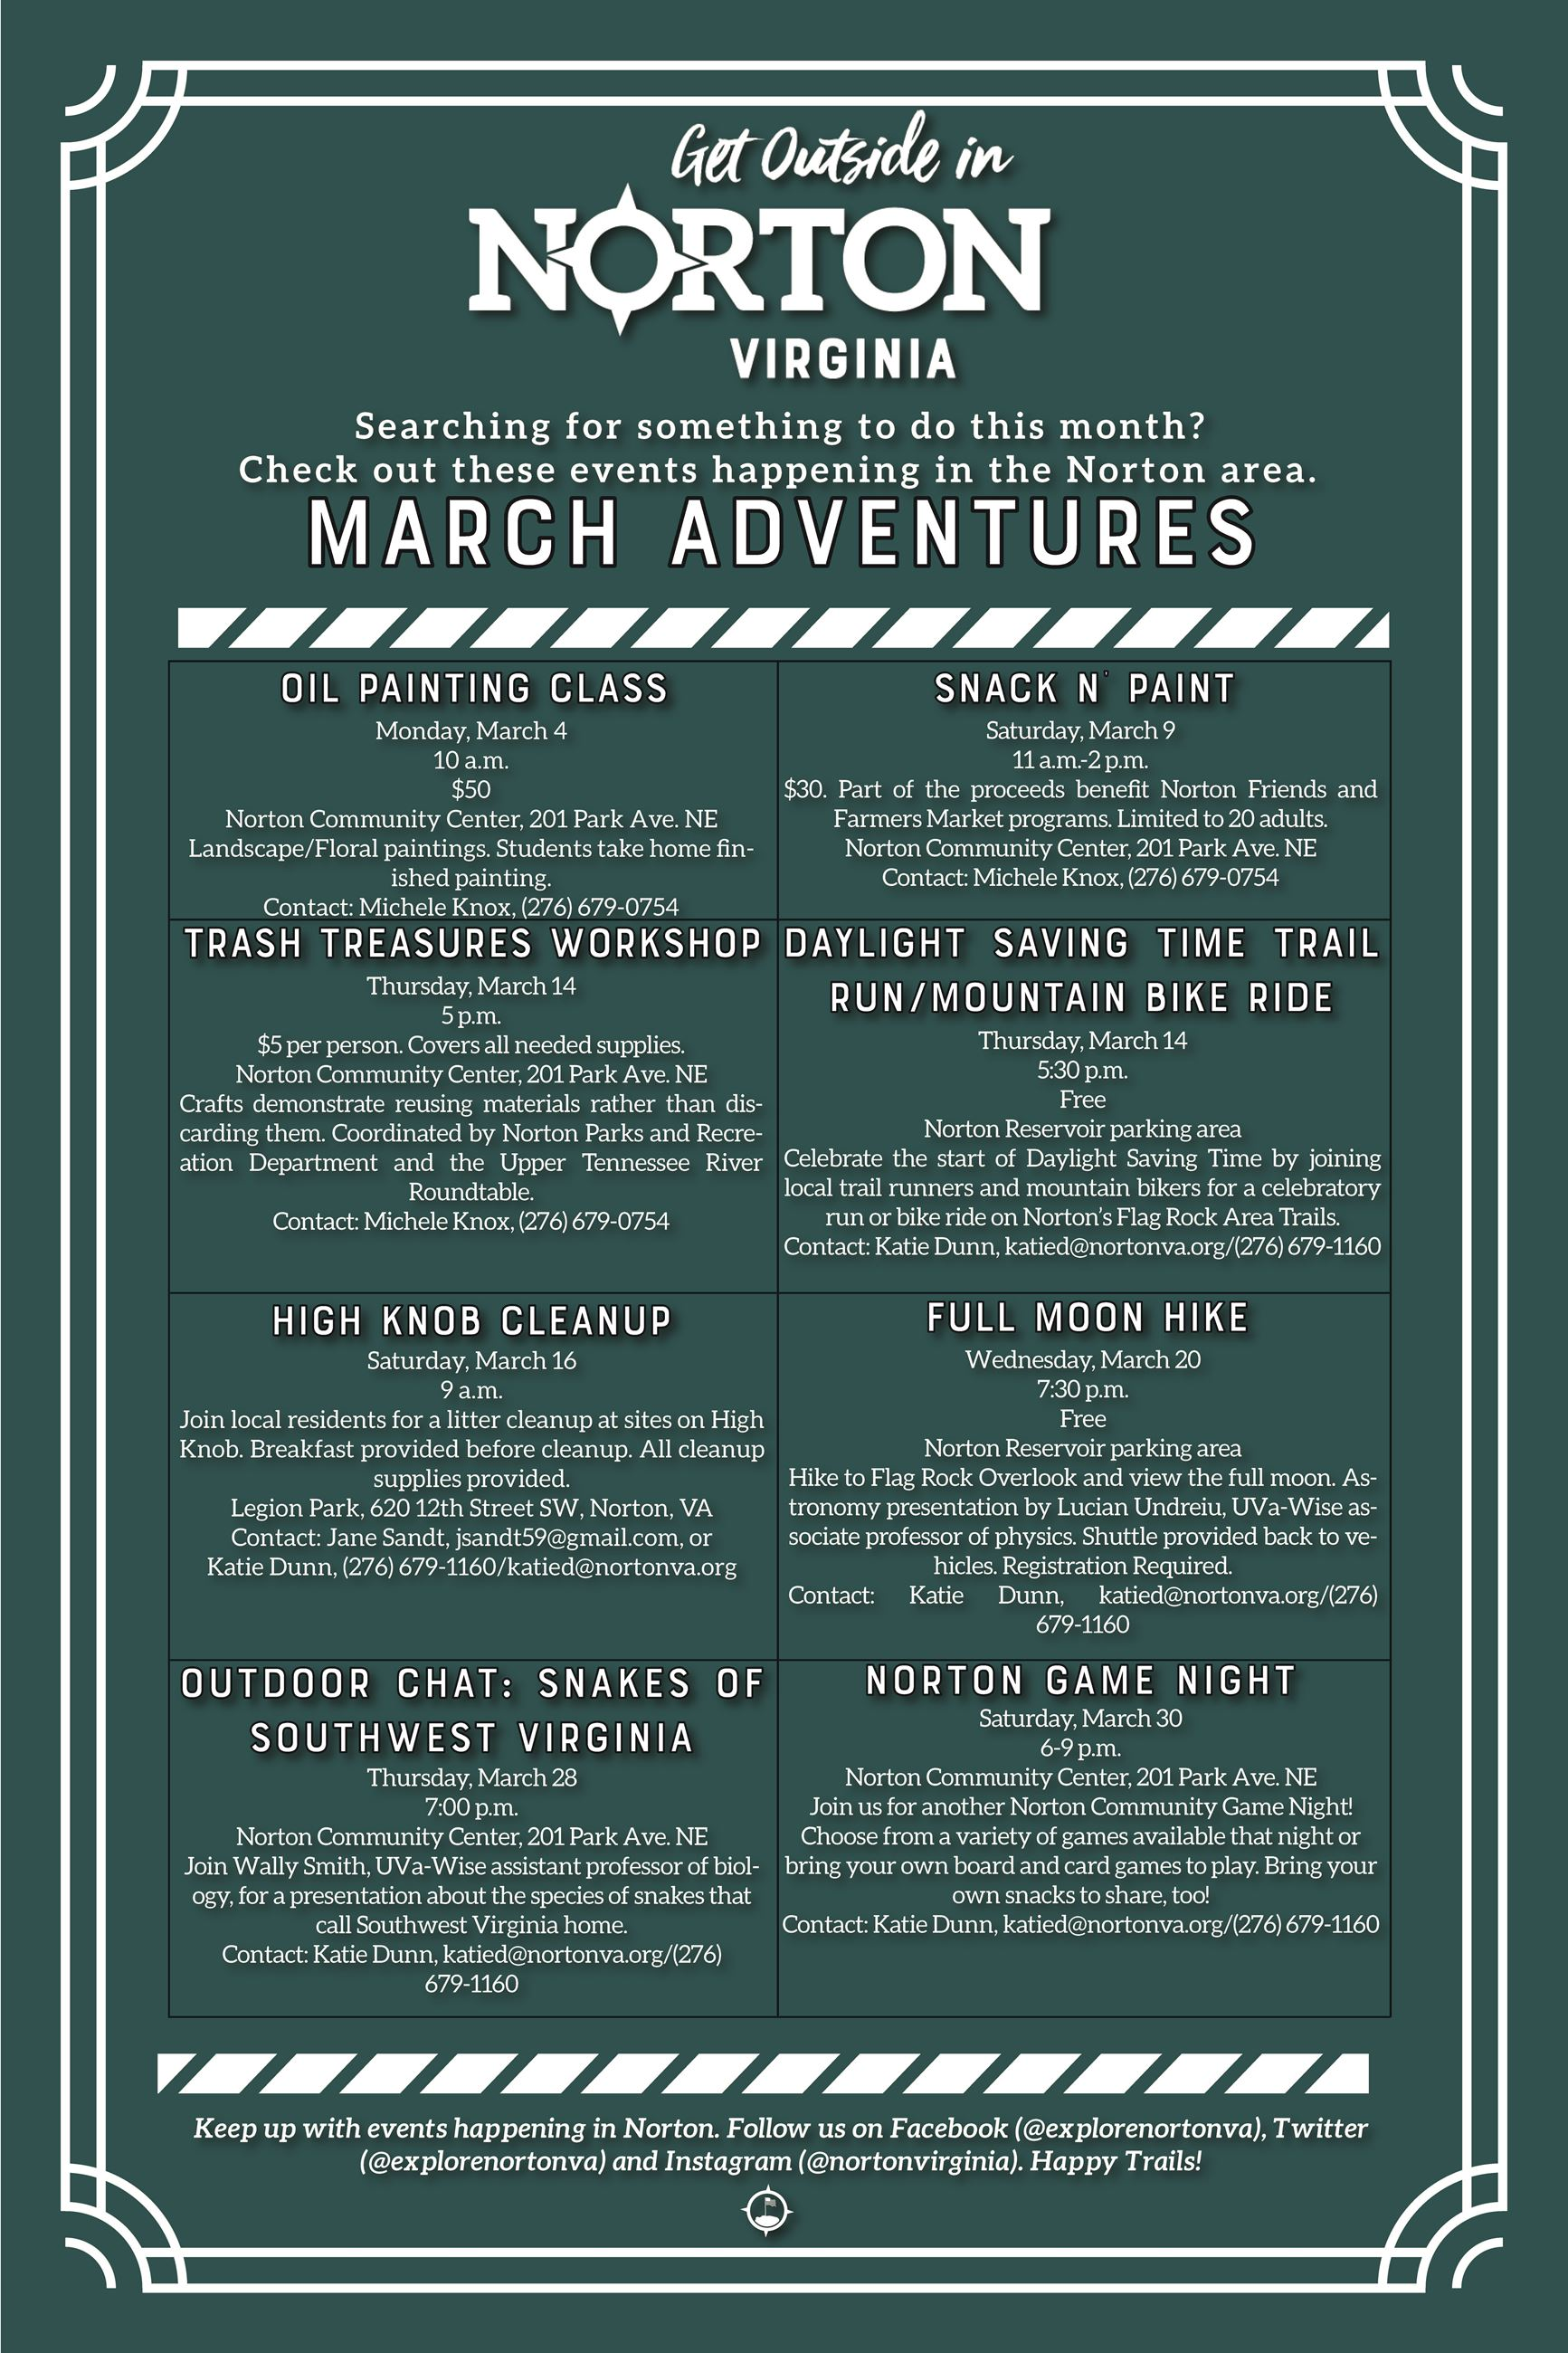 Photo of a flyer detailing events happening in Norton in March 2019